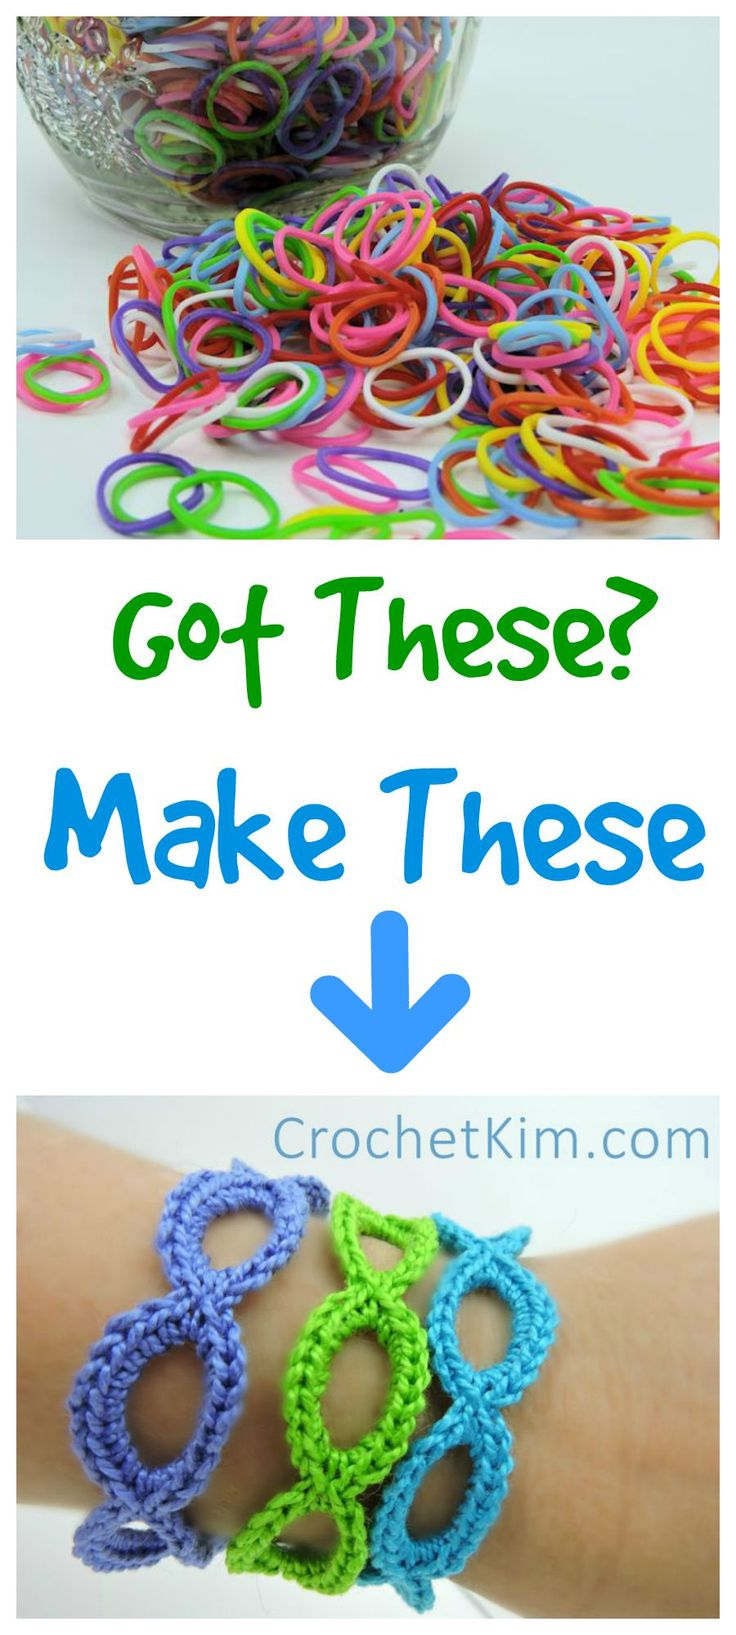 Stretchy Bracelets Made Loom Rubber Bands | free crochet pattern at CrochetKim